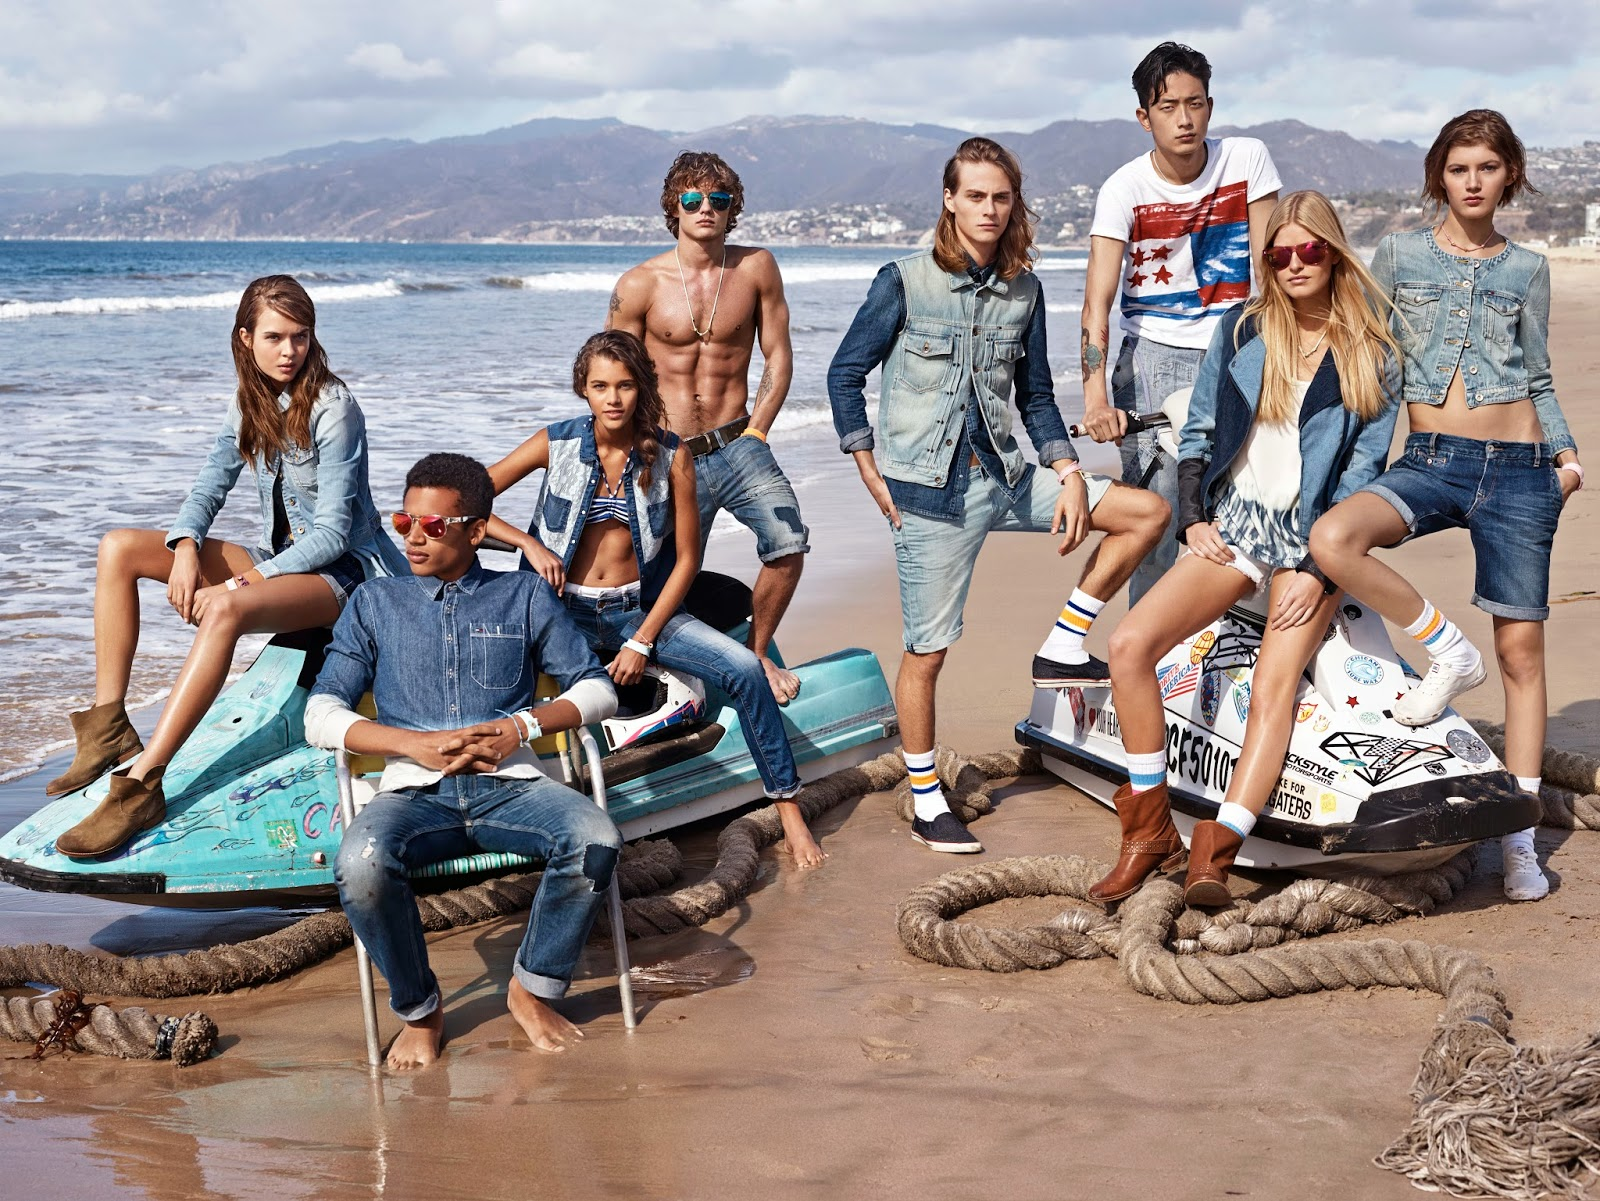 Tommy hilfiger, índigo, Denim, Hilfiger Denim, Spring 2014, spring summer, primavera verano, True to the Blue,